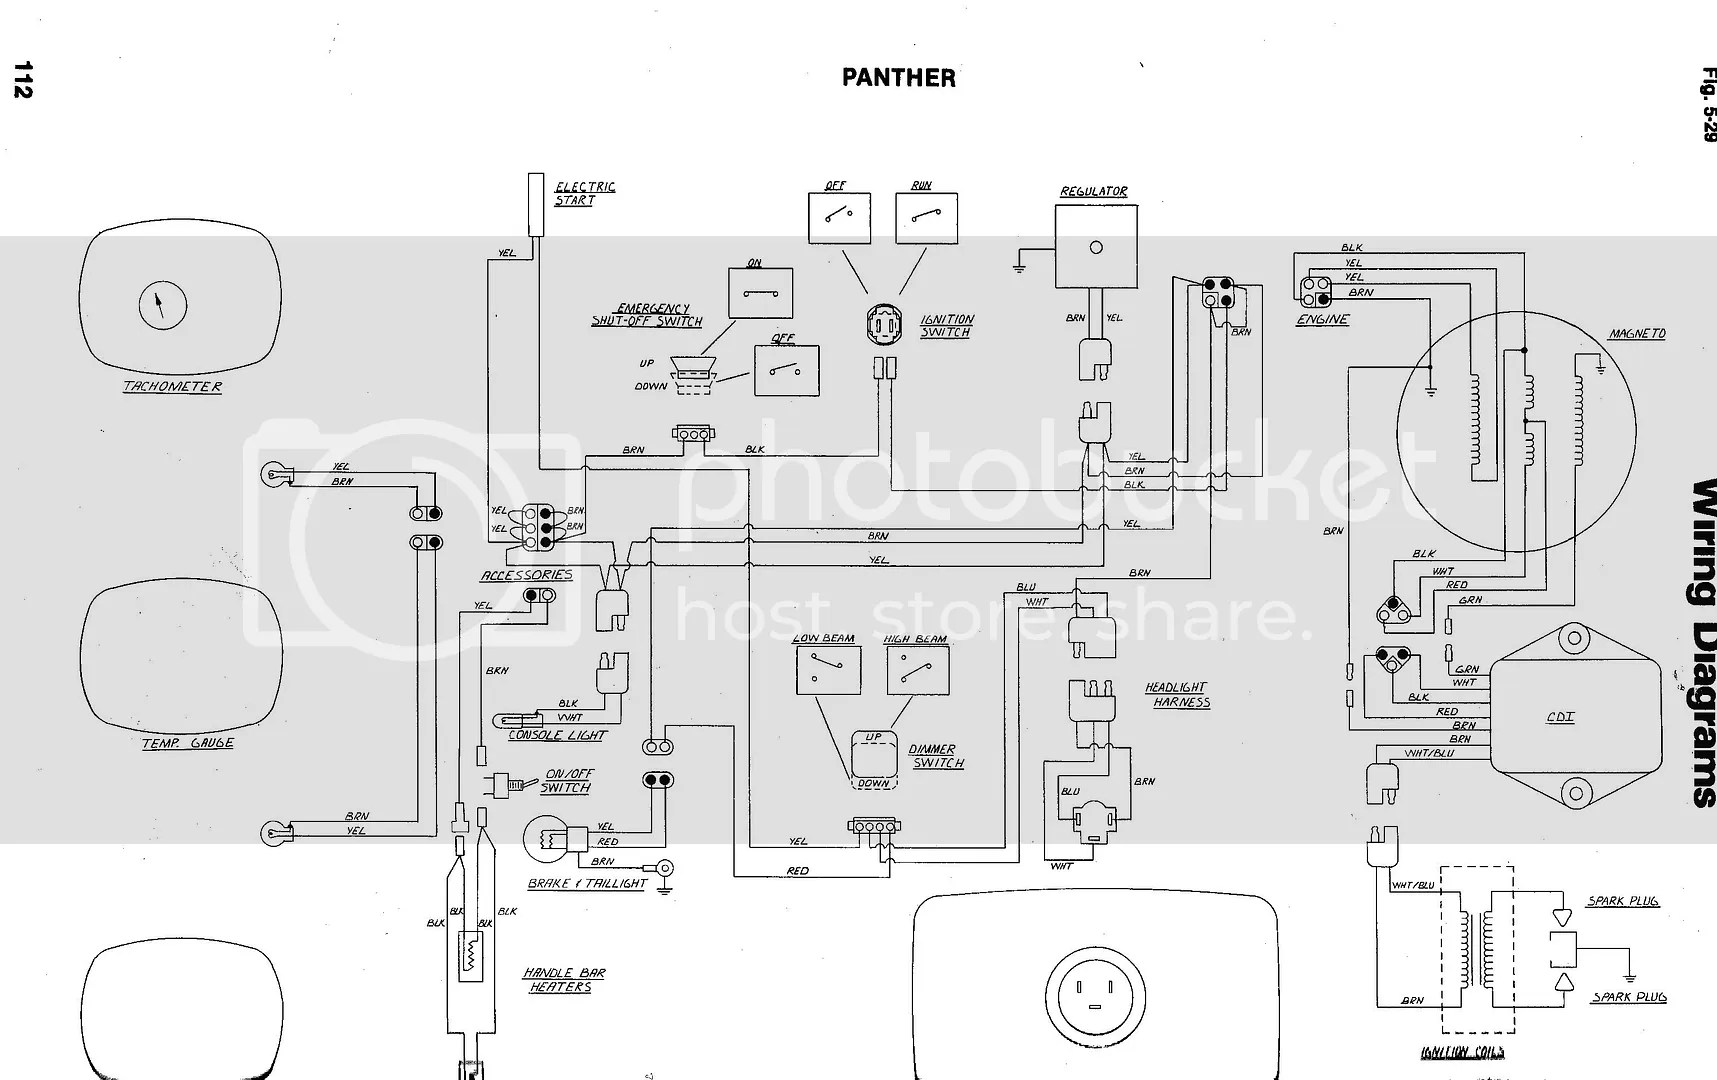 Need Wiring Diagram For A Jag